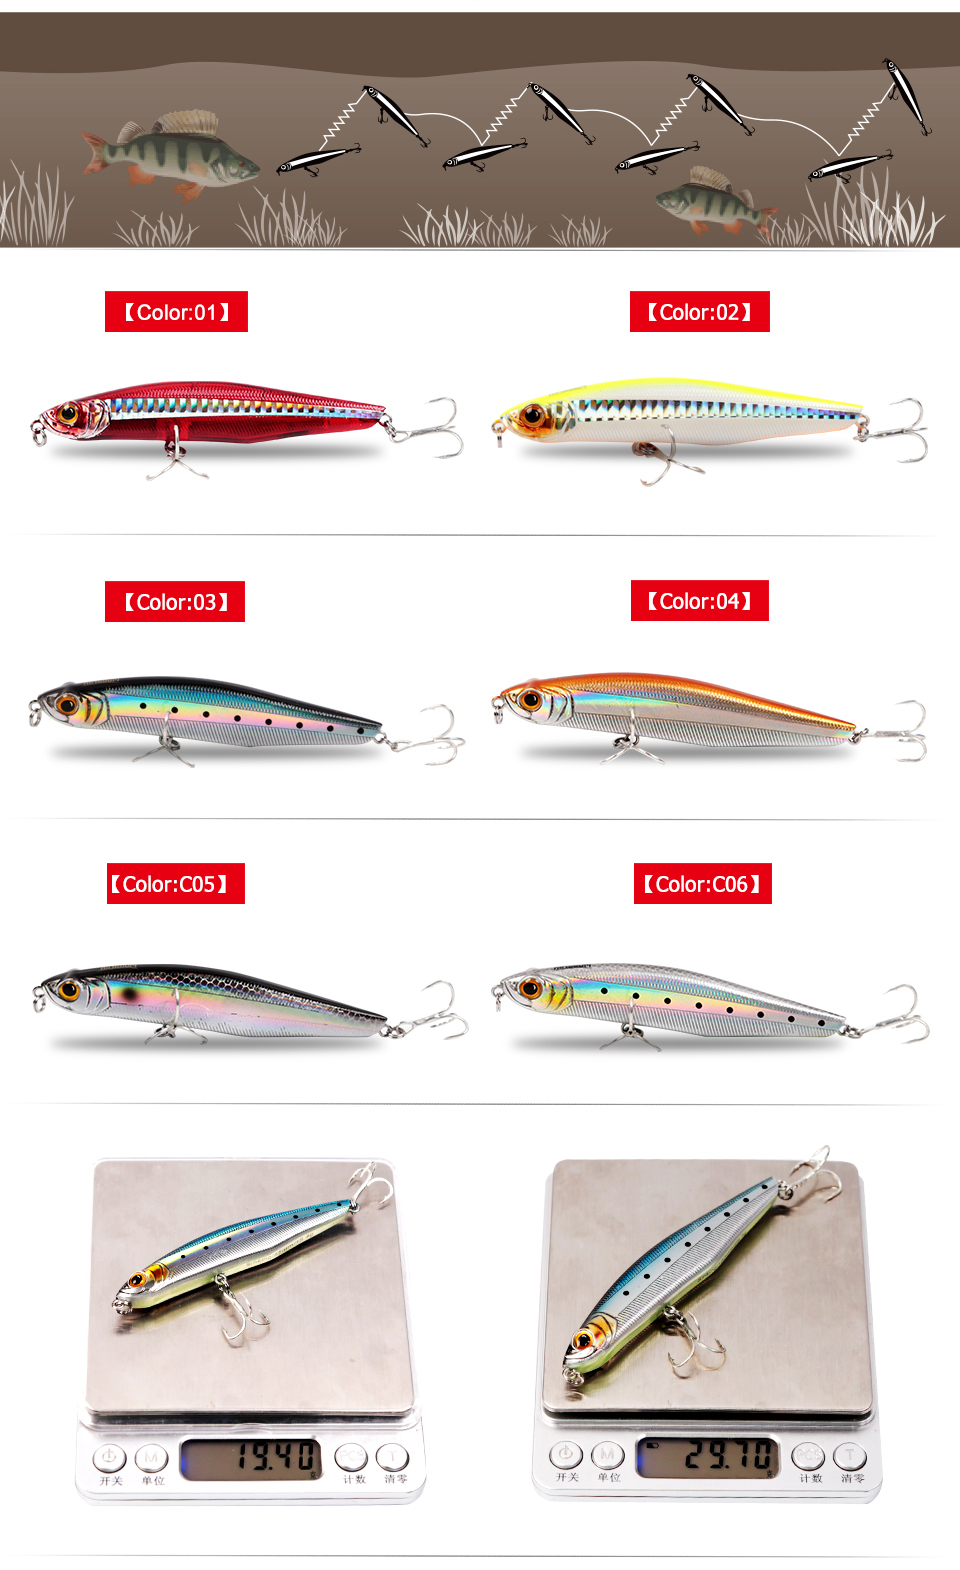 Kingdom Fishing Lures Hard Bait Slow Sinking Pencil 19.4g,85mm 29.7g,100mm Sea Bass China Artificial Lures Wobblers Model 5503 (7)